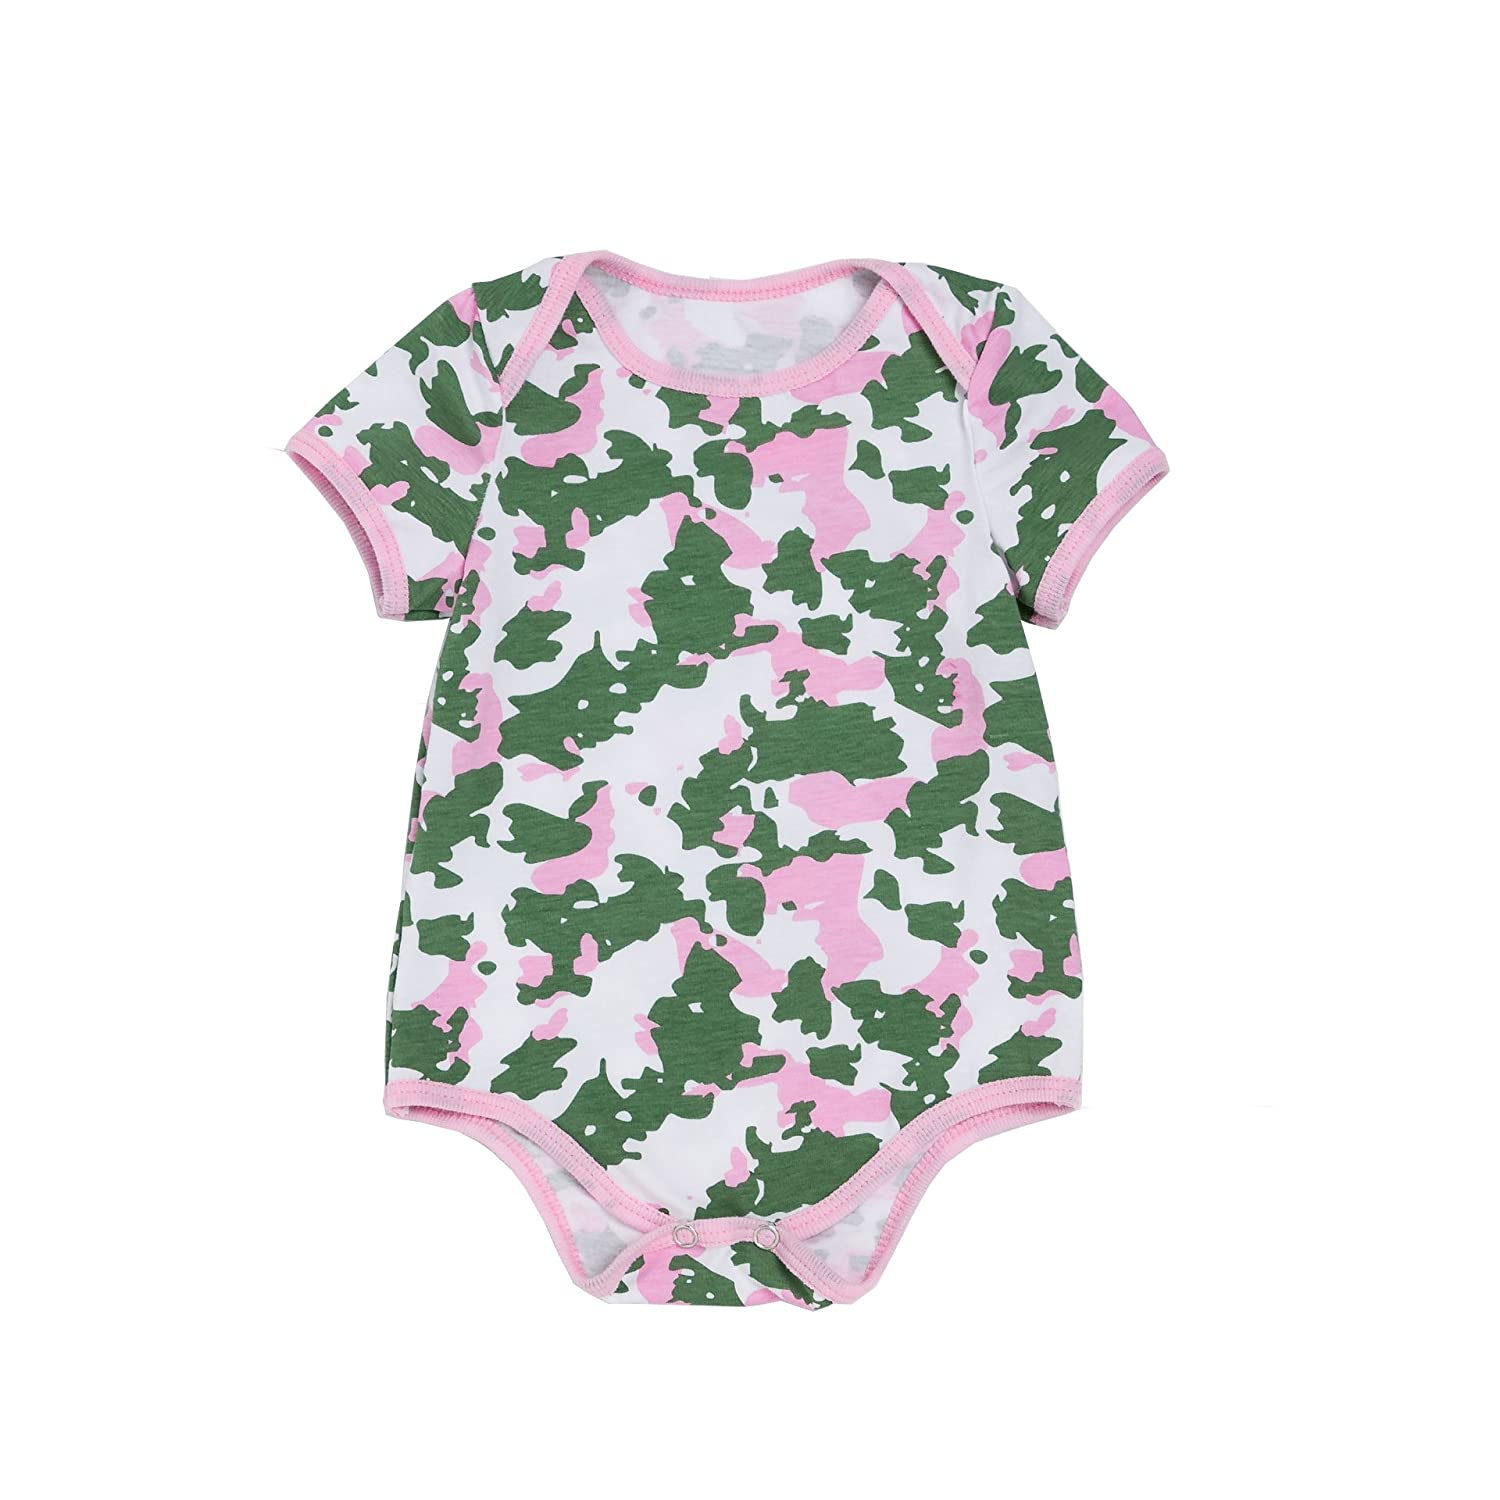 Fairy Baby Girls Boys Vest Camouflage Romper Summer Outfits Short Sleeves